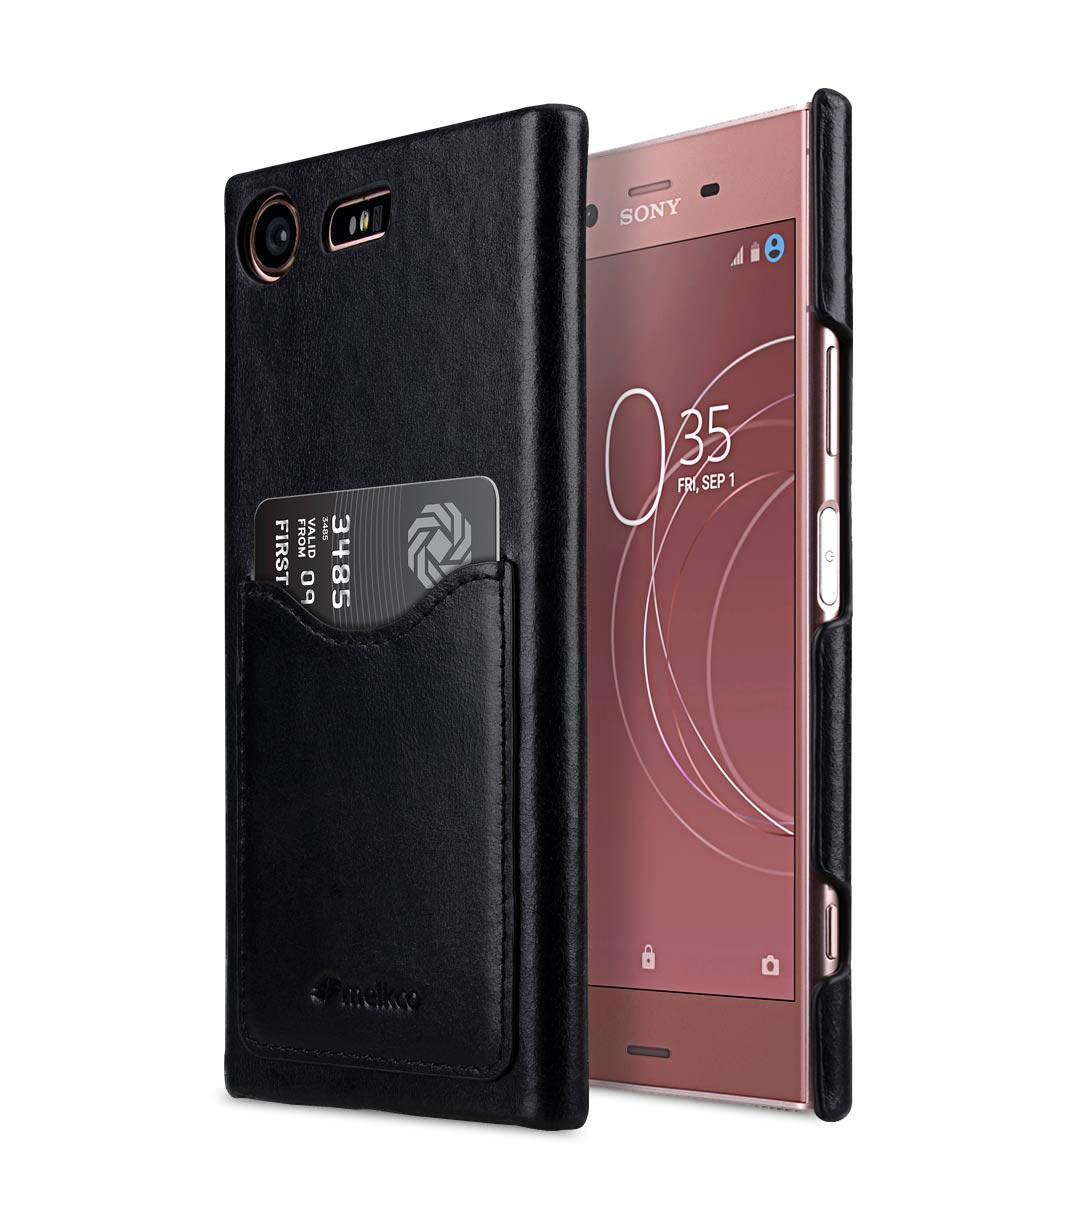 Sony Xz1 Compact System Update Premium Leather Card Slot Cover Case For Sony Xperia Xz1 Compact